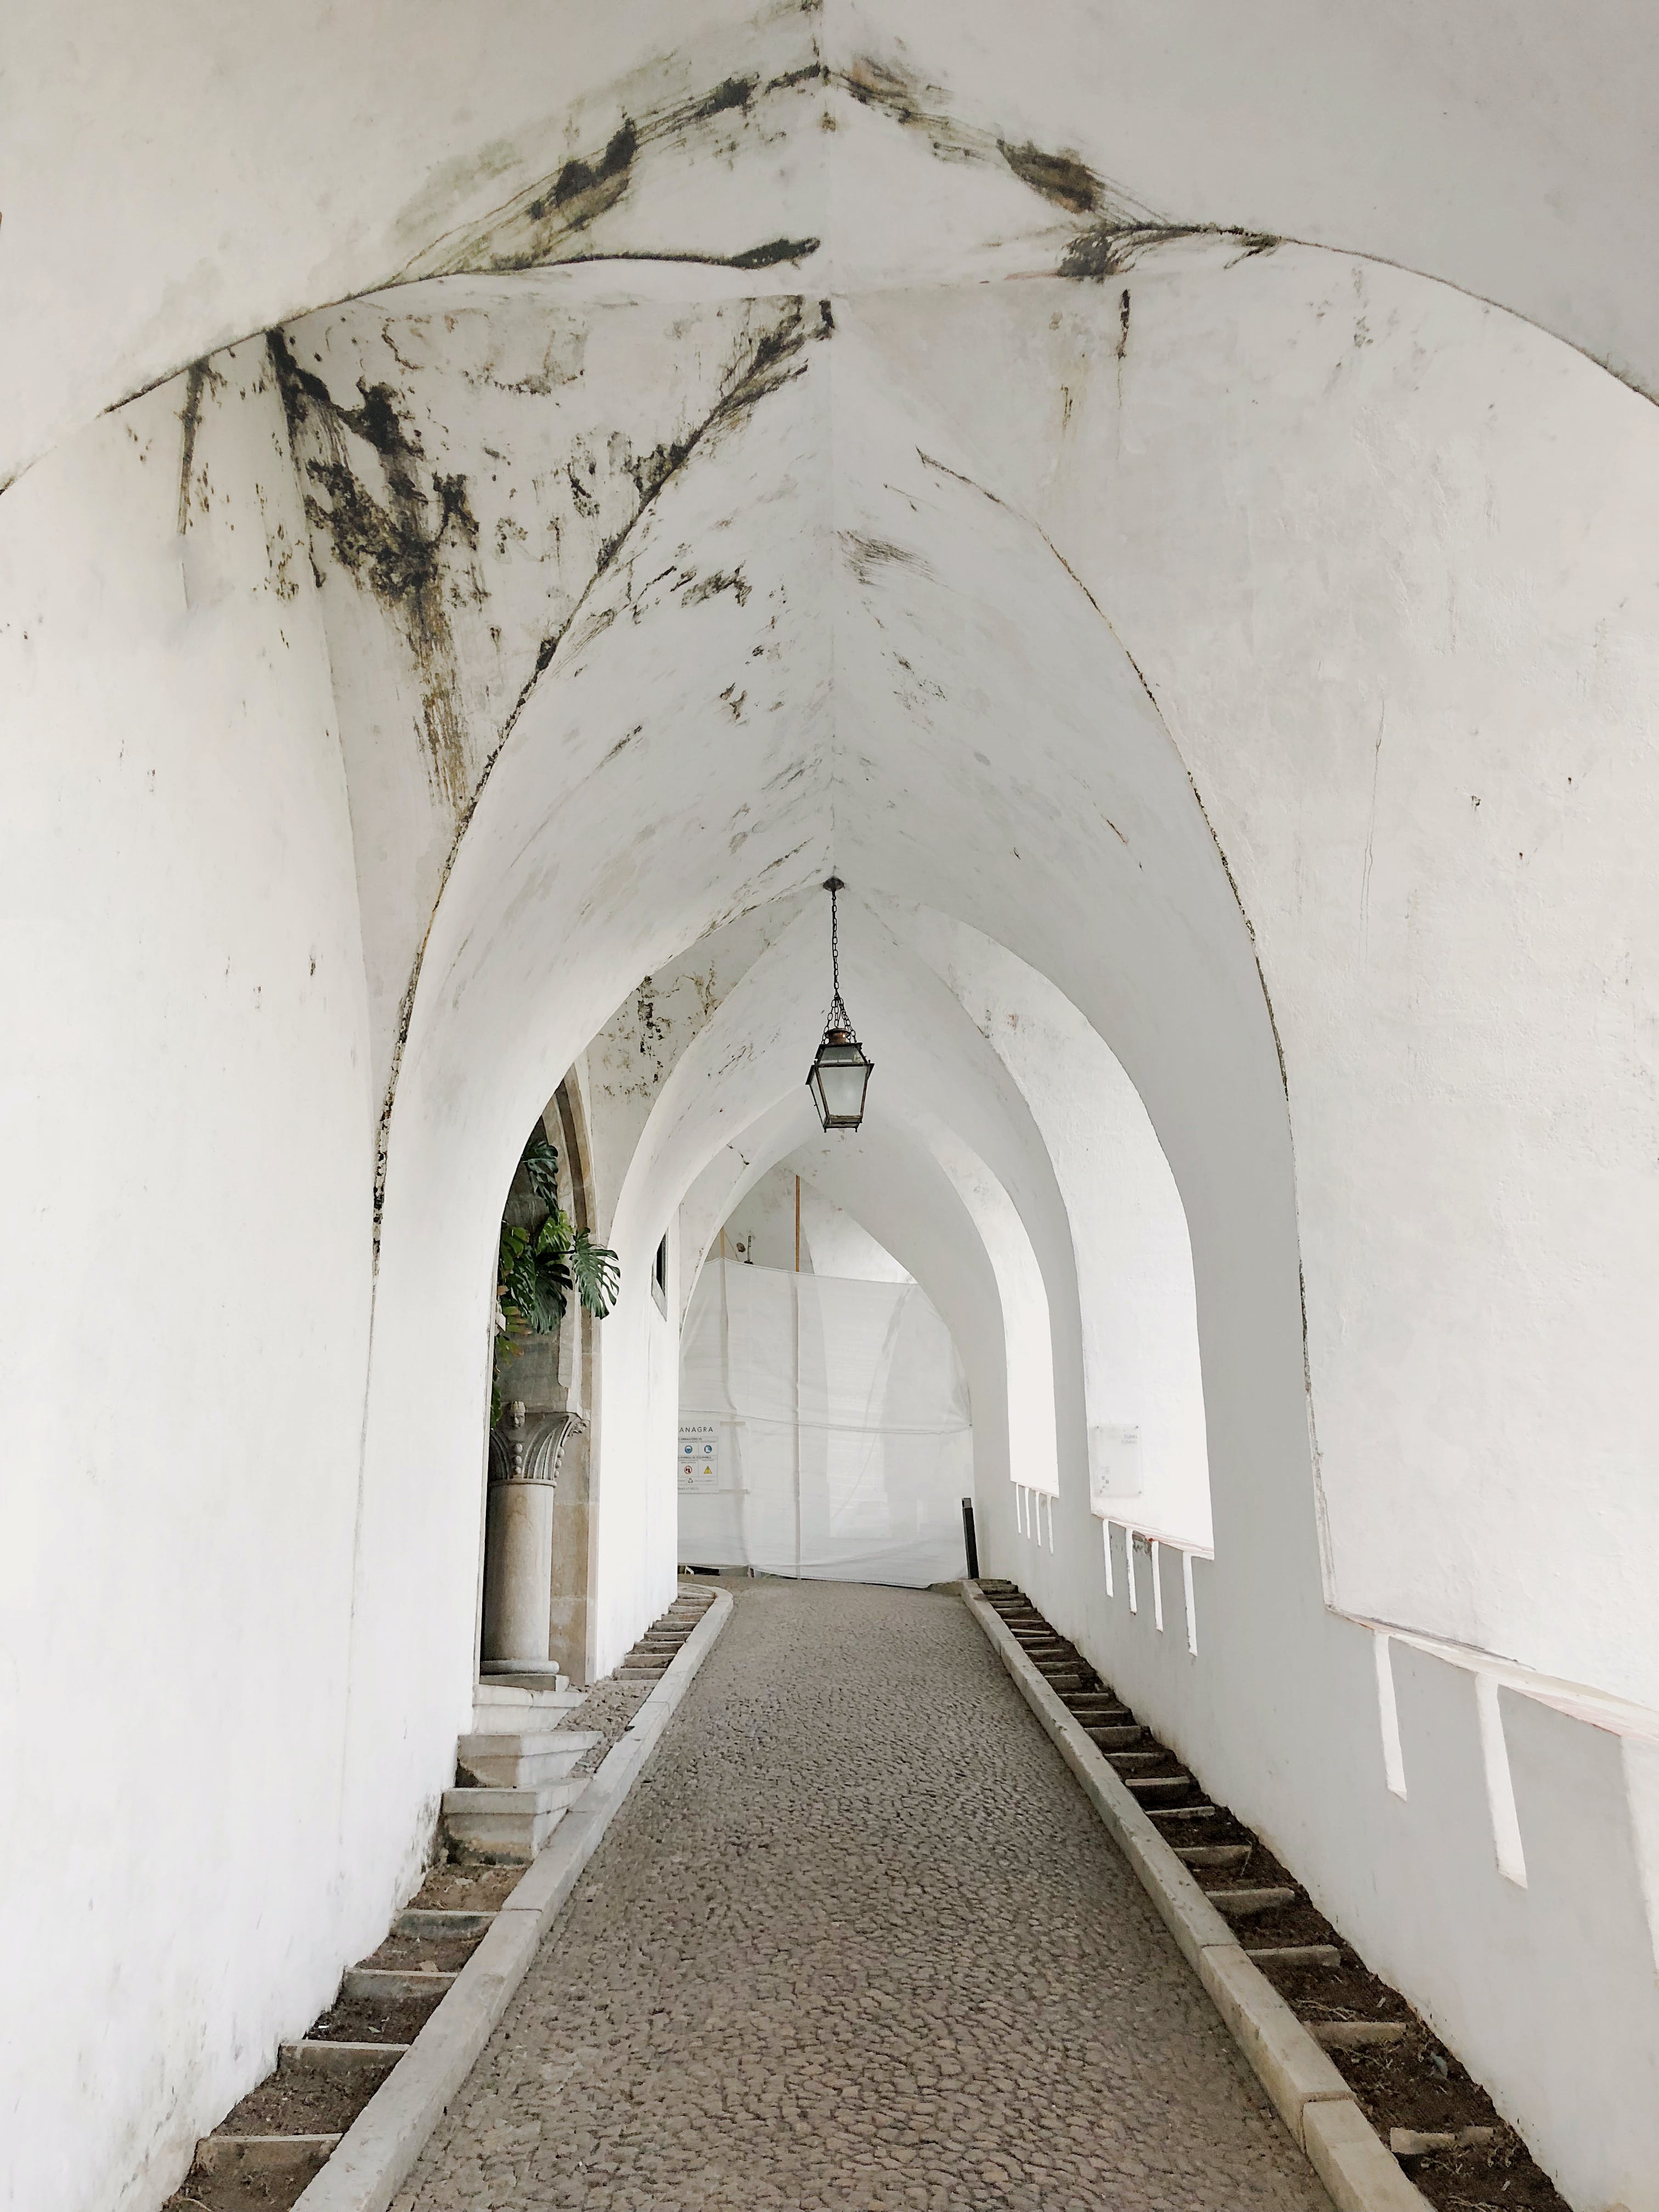 Free stock photo of building, architecture, arch, hallway